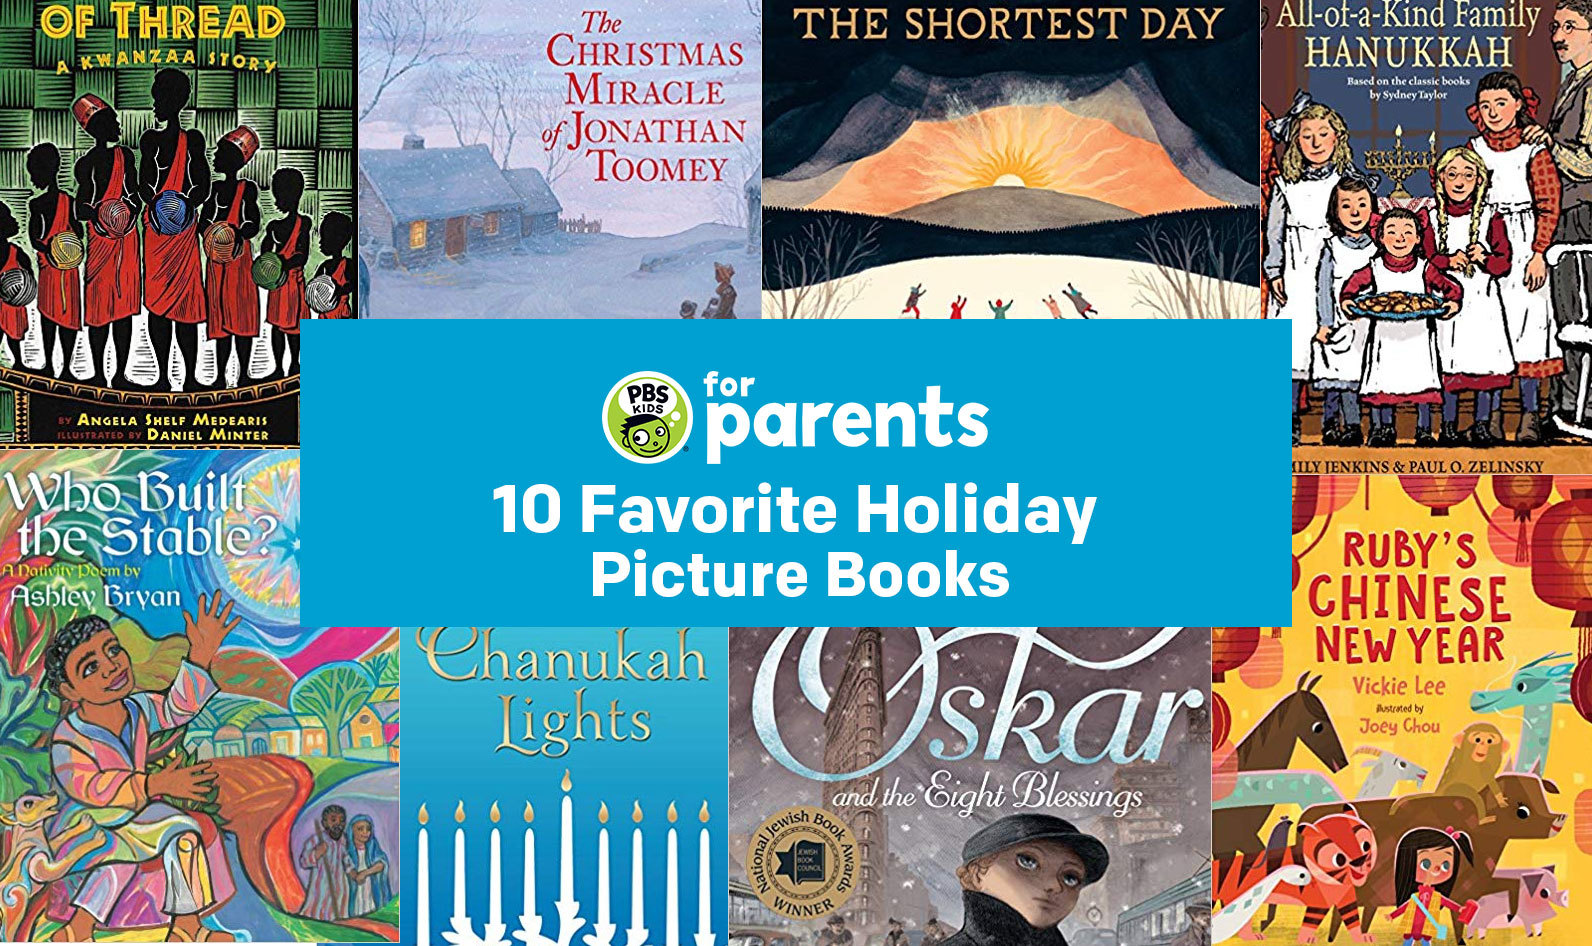 10 Favorite Holiday Picture Books | Parenting Tips & Advice | PBS KIDS for Parents